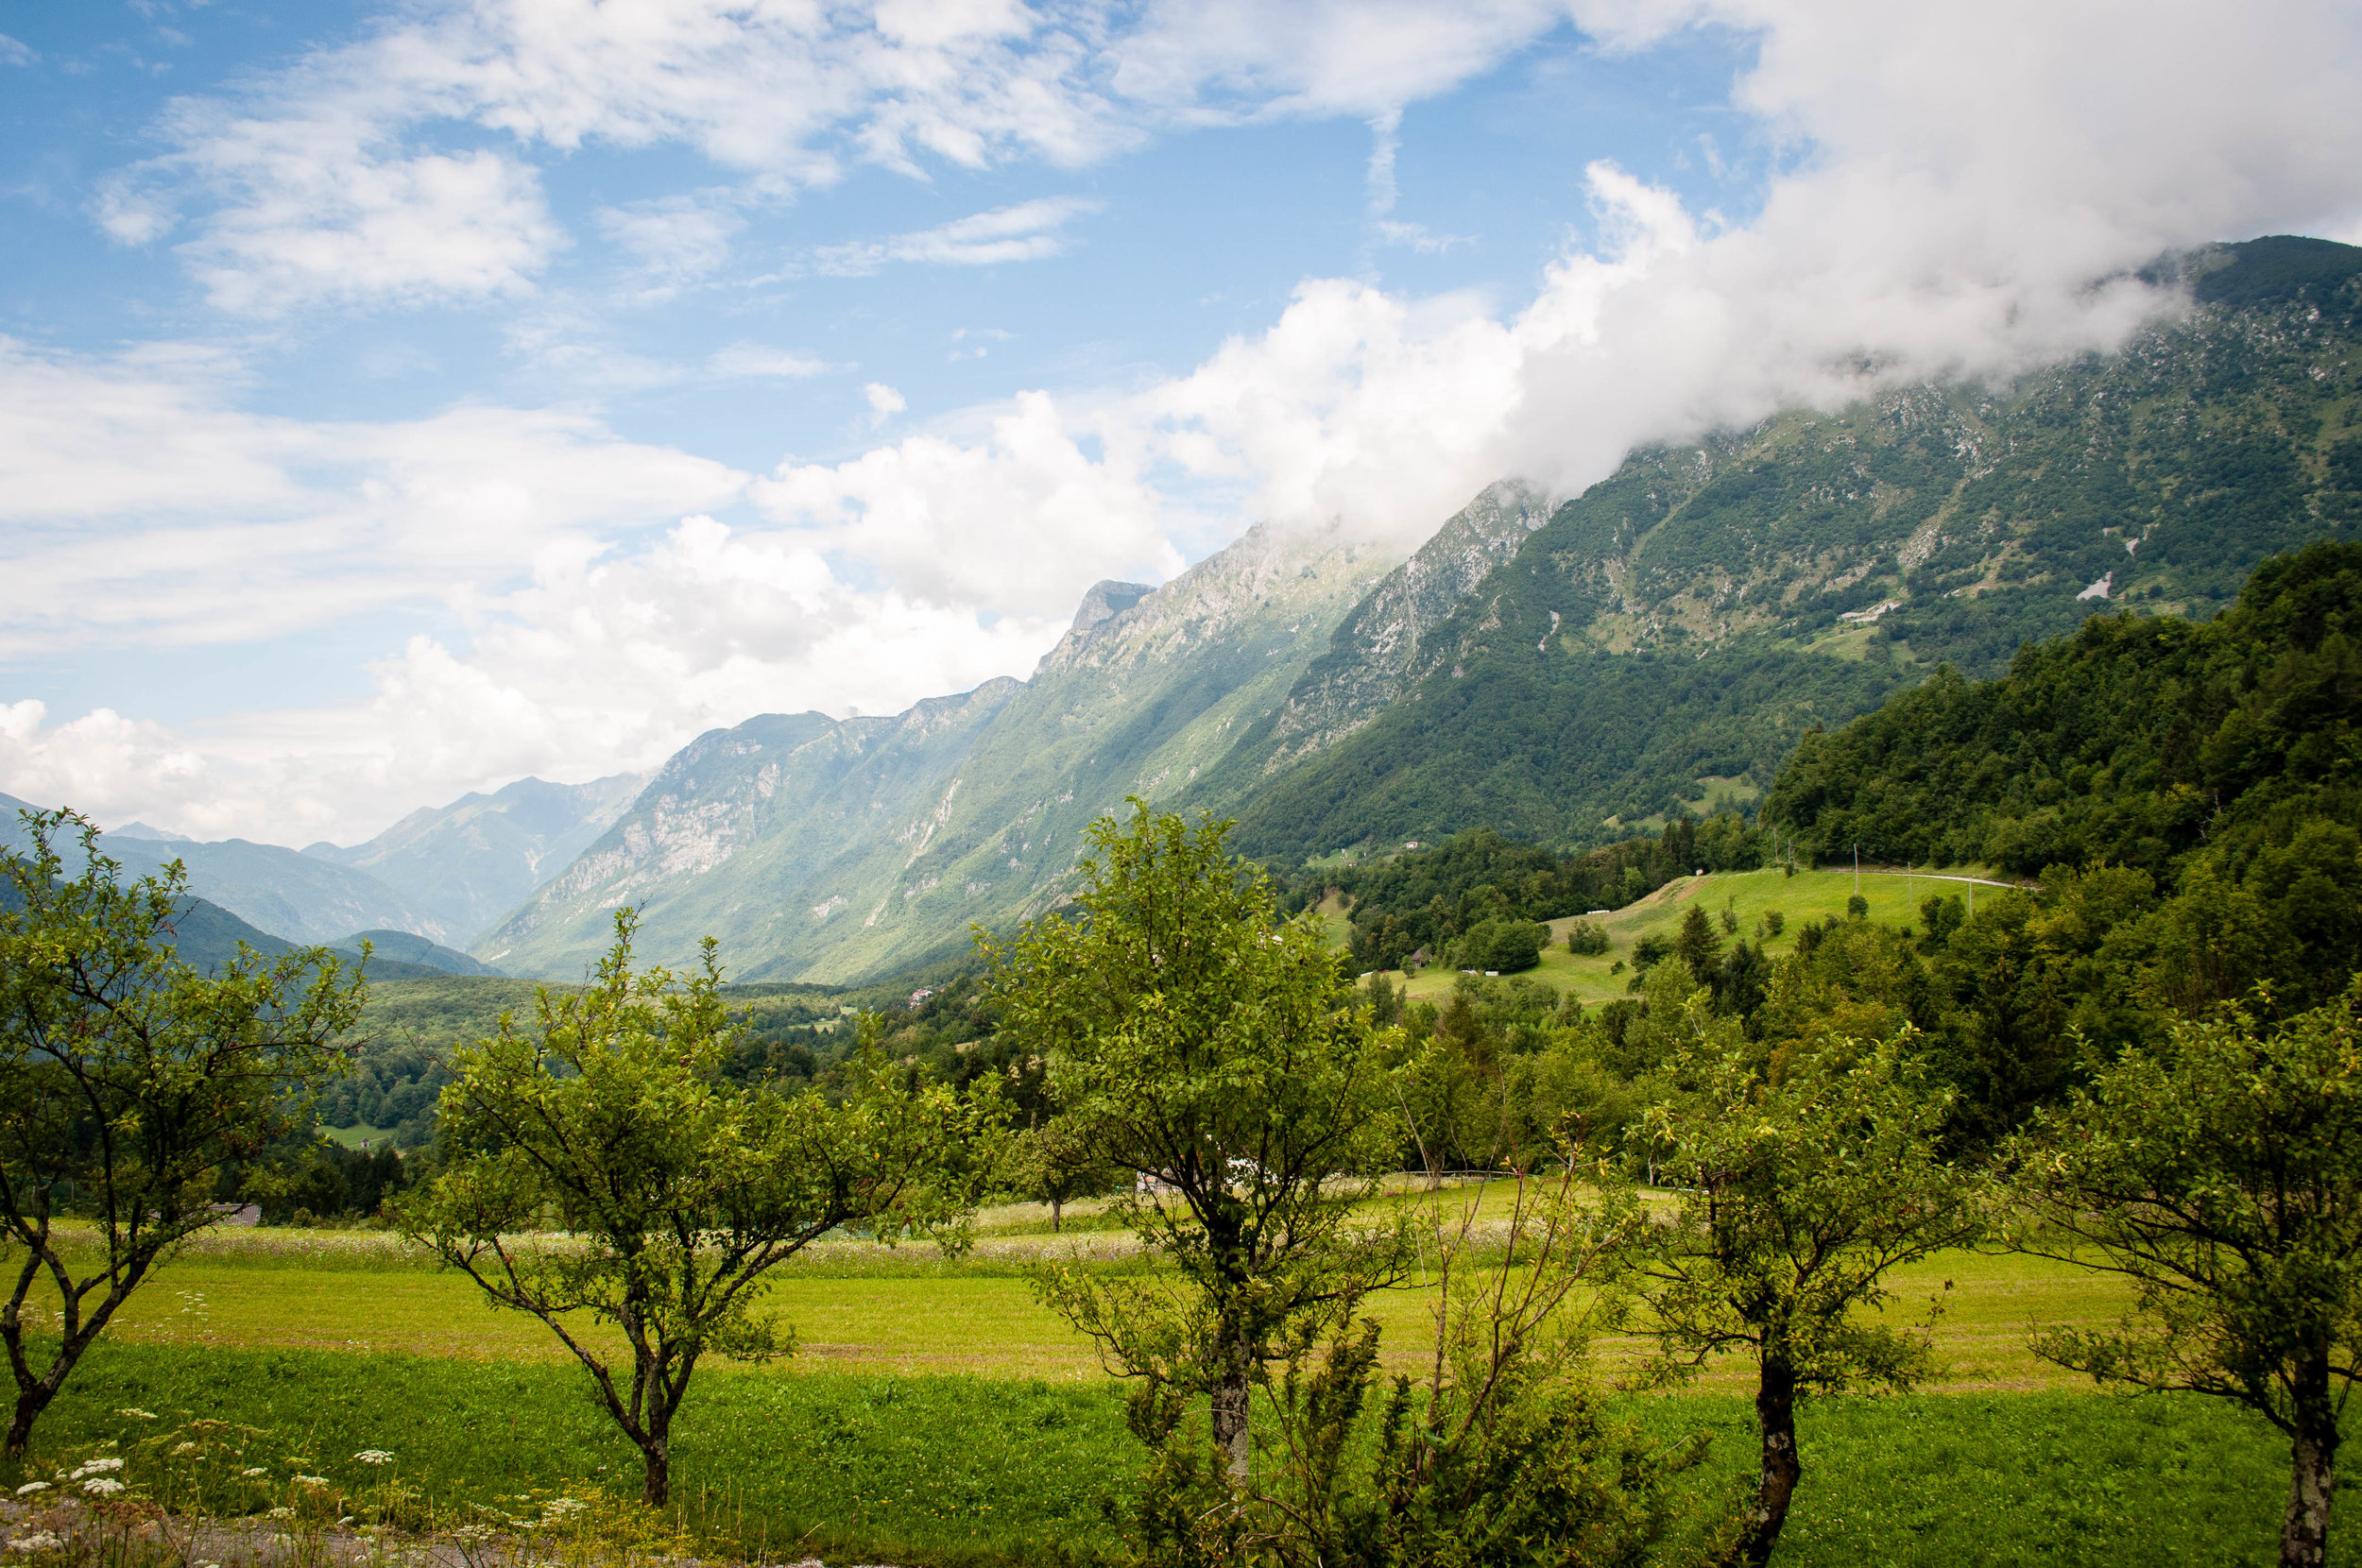 Soca valley, part of the itinerary Road trip in Slovenia